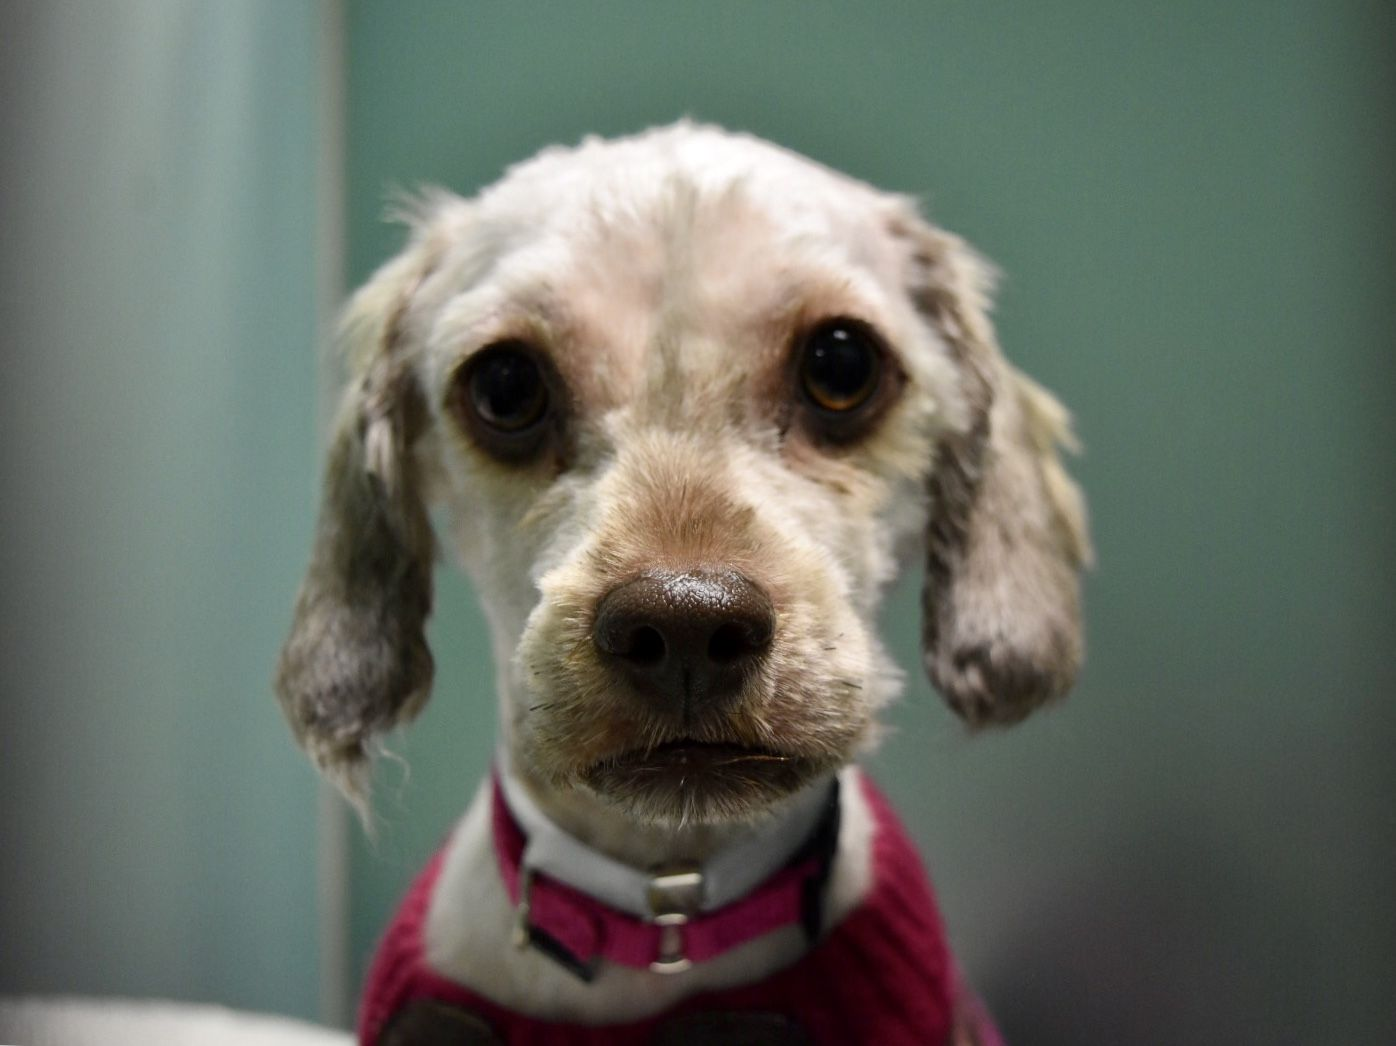 Super Urgent MIRACLE ID 41815 Poodle small breed mix